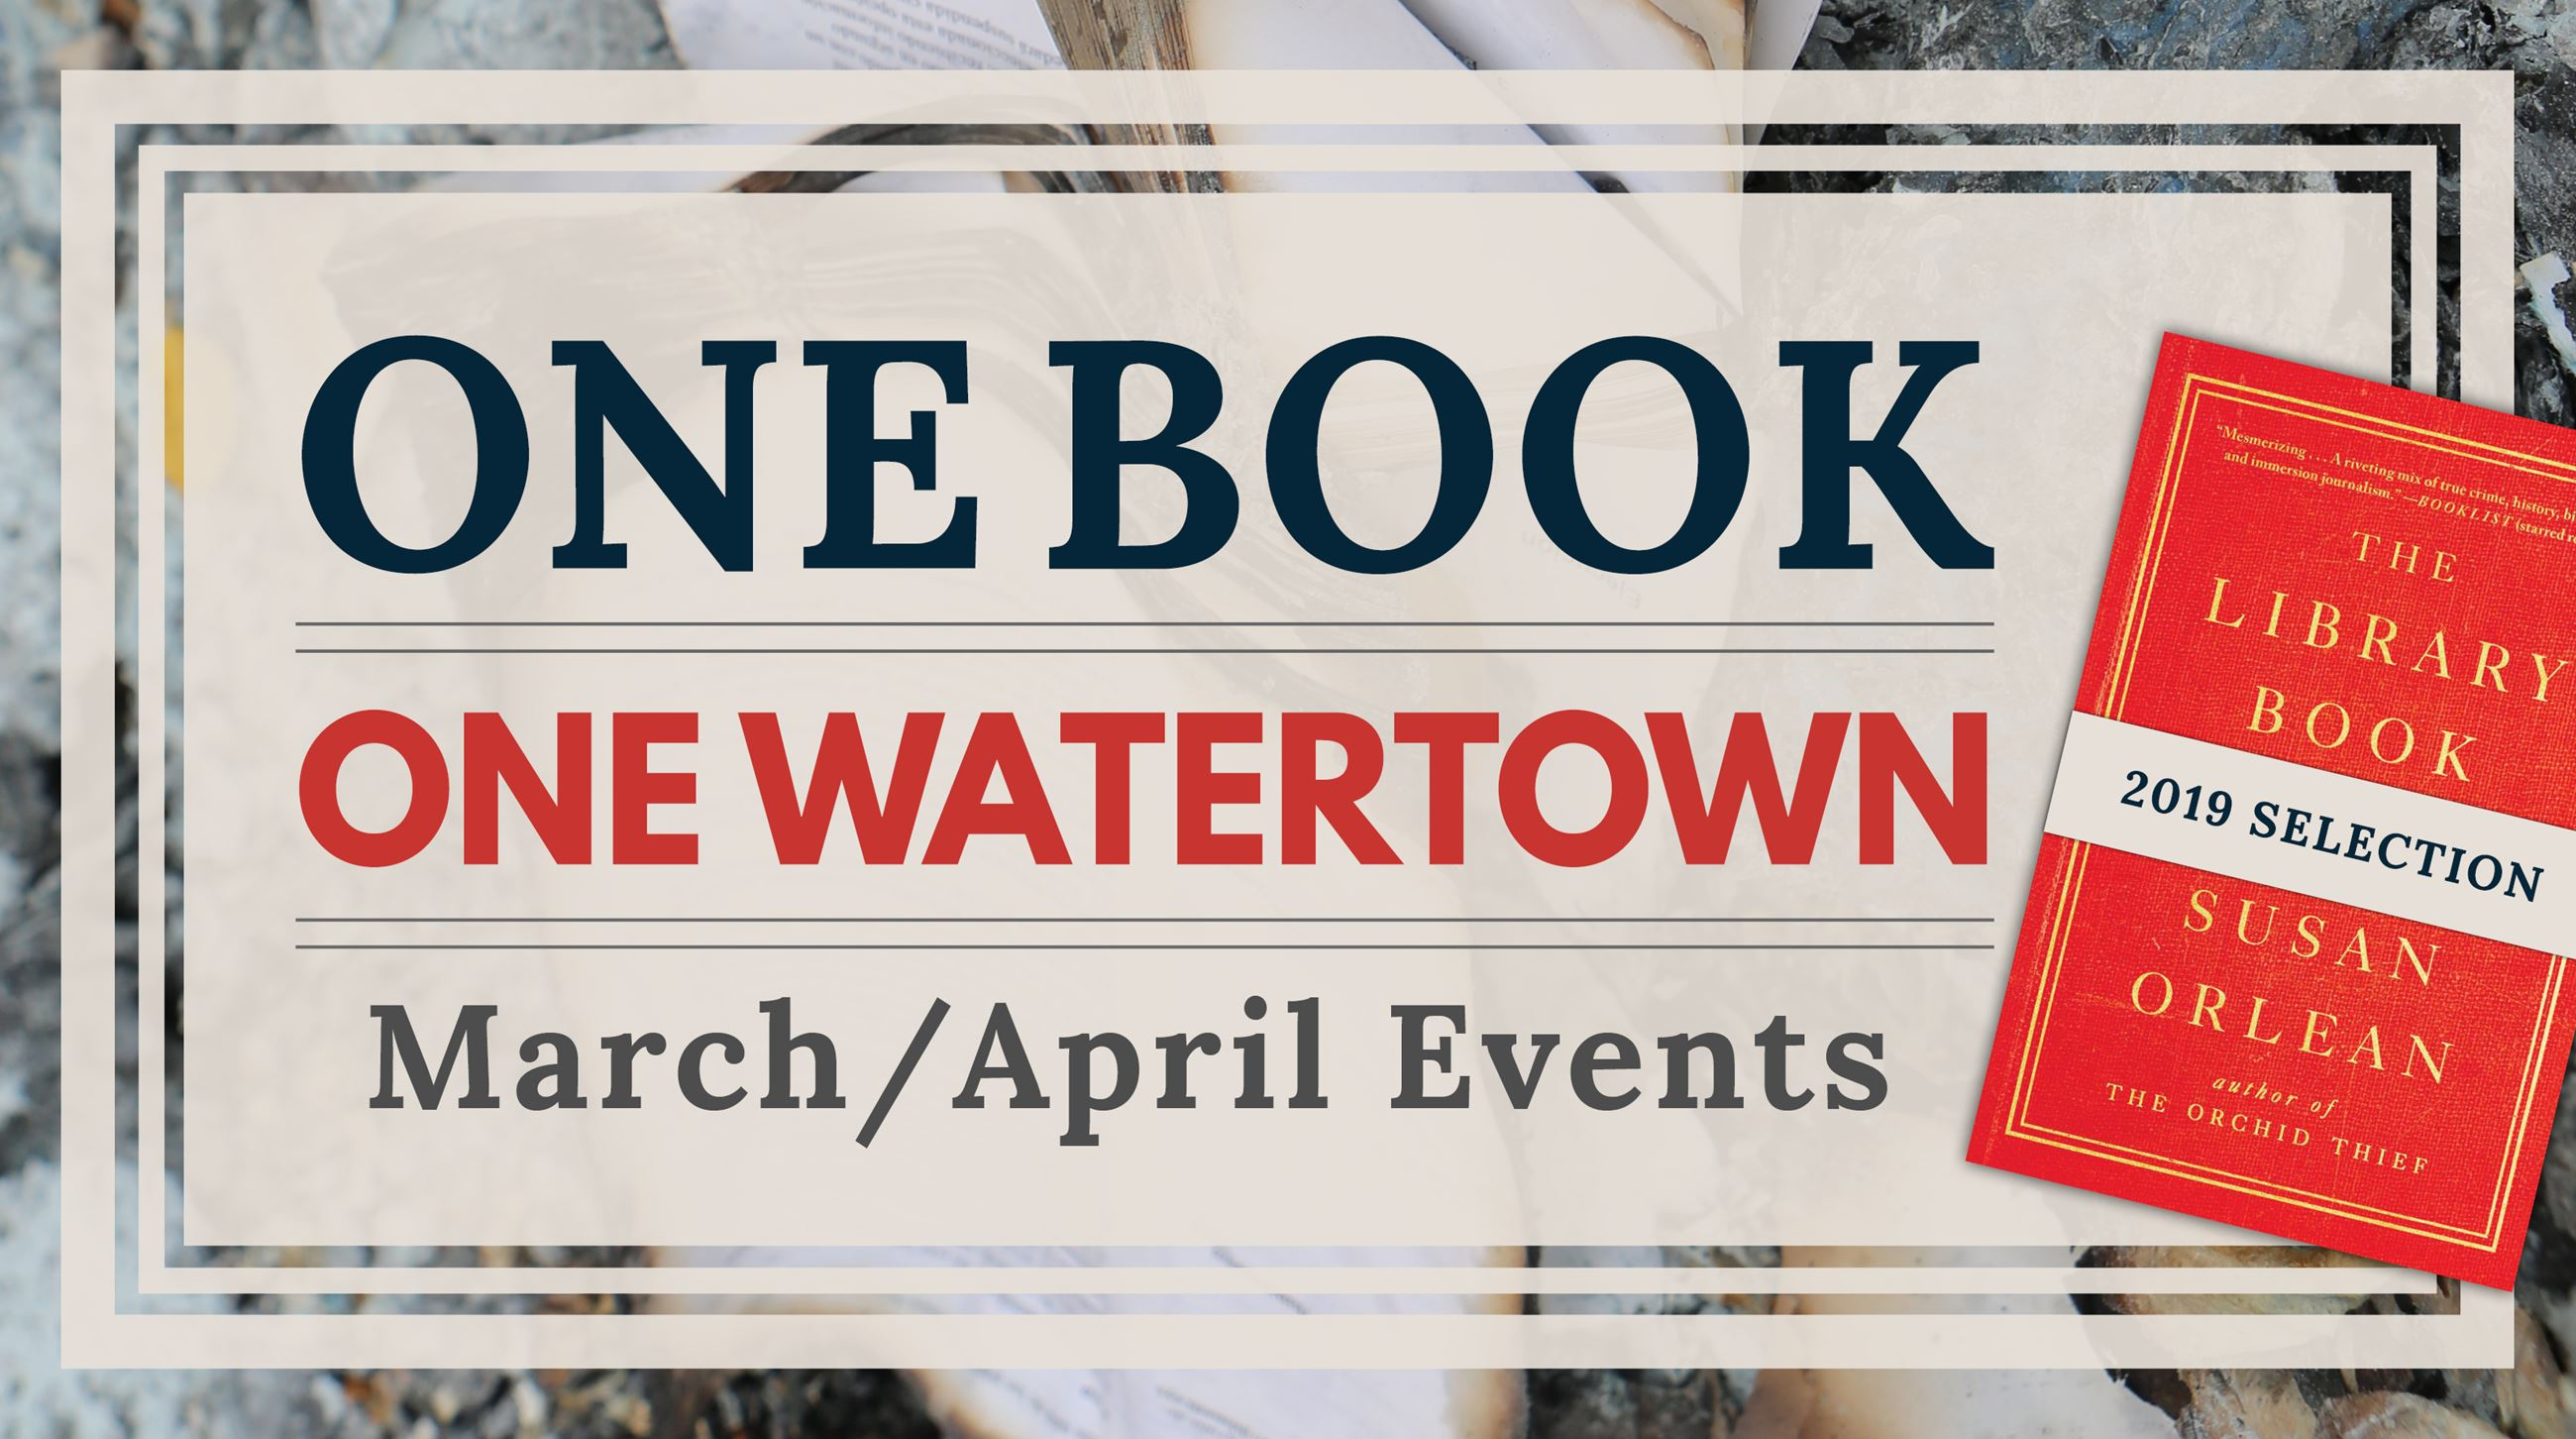 One Book, One Watertown 2019 event schedule is now available